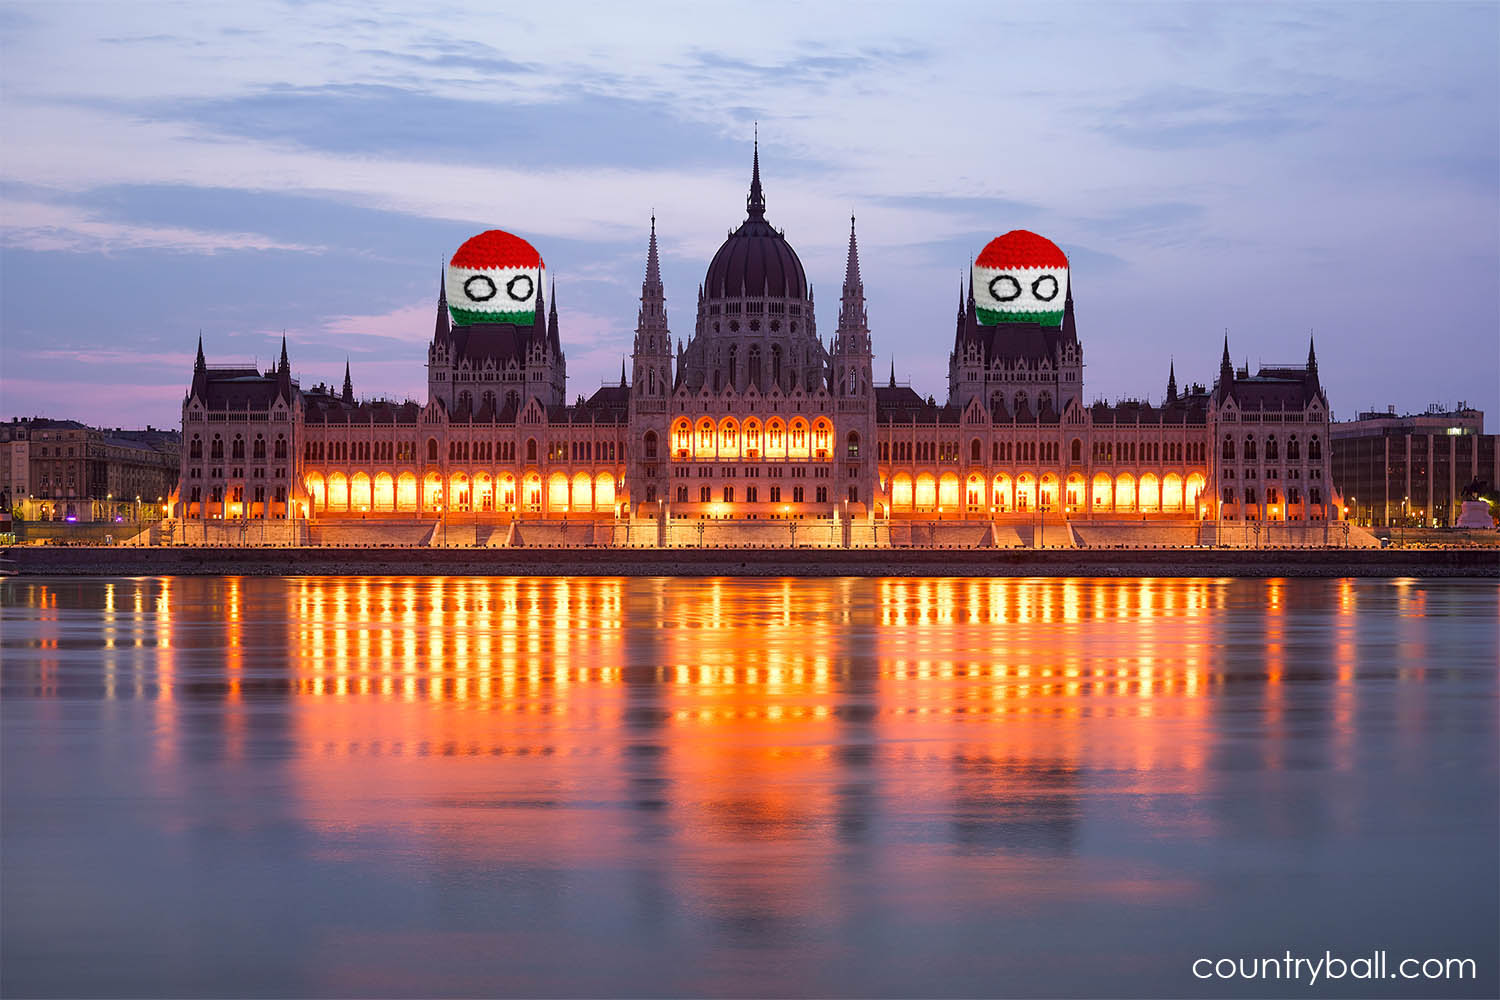 Hungaryballs and the Parlament in Budapest